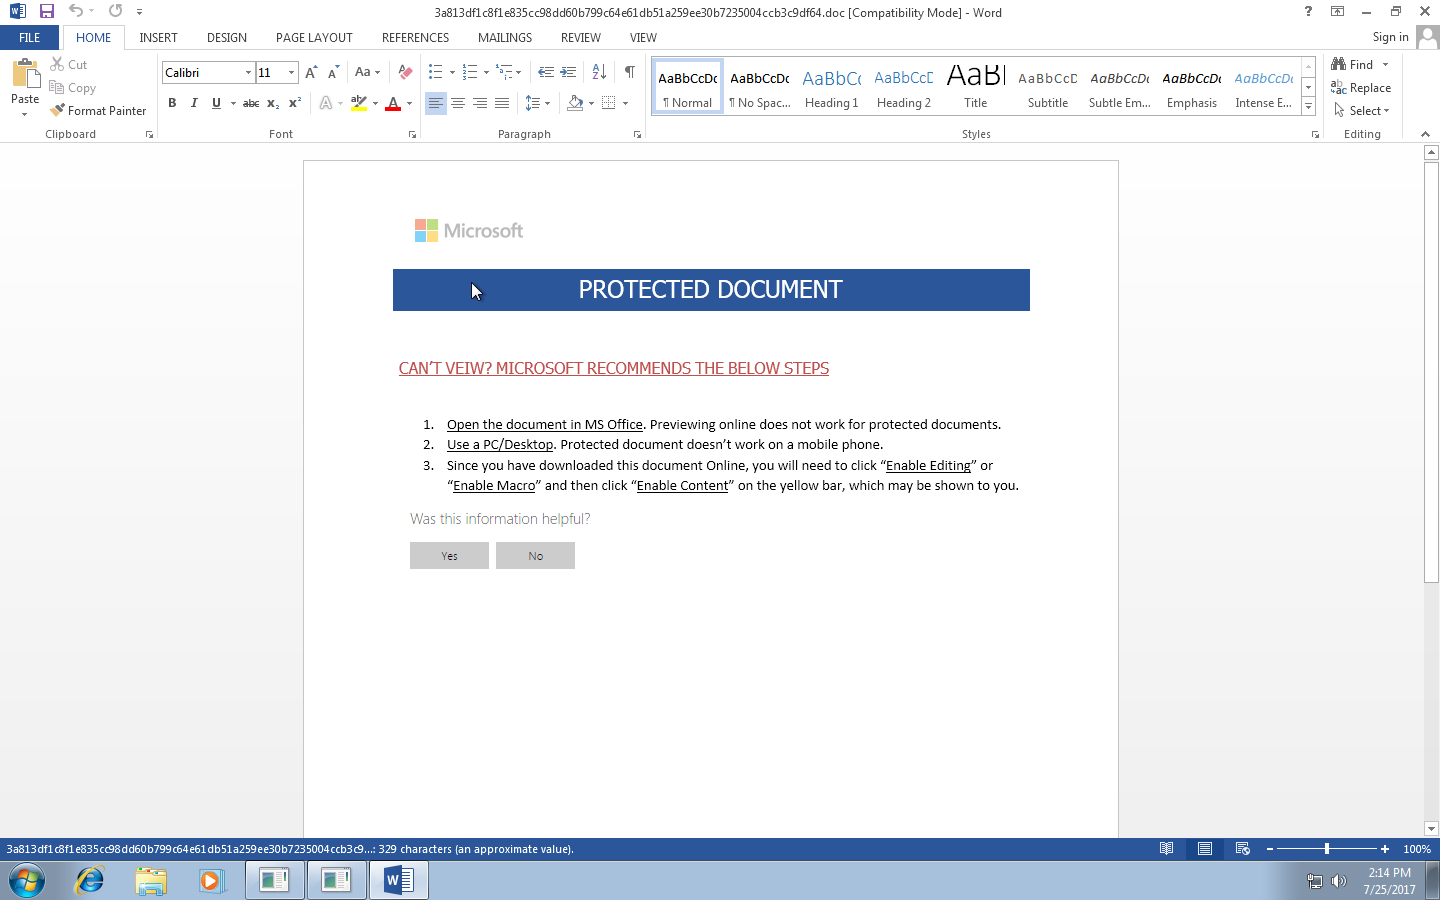 Password Protected Microsoft Word Document Analysis | VMRay